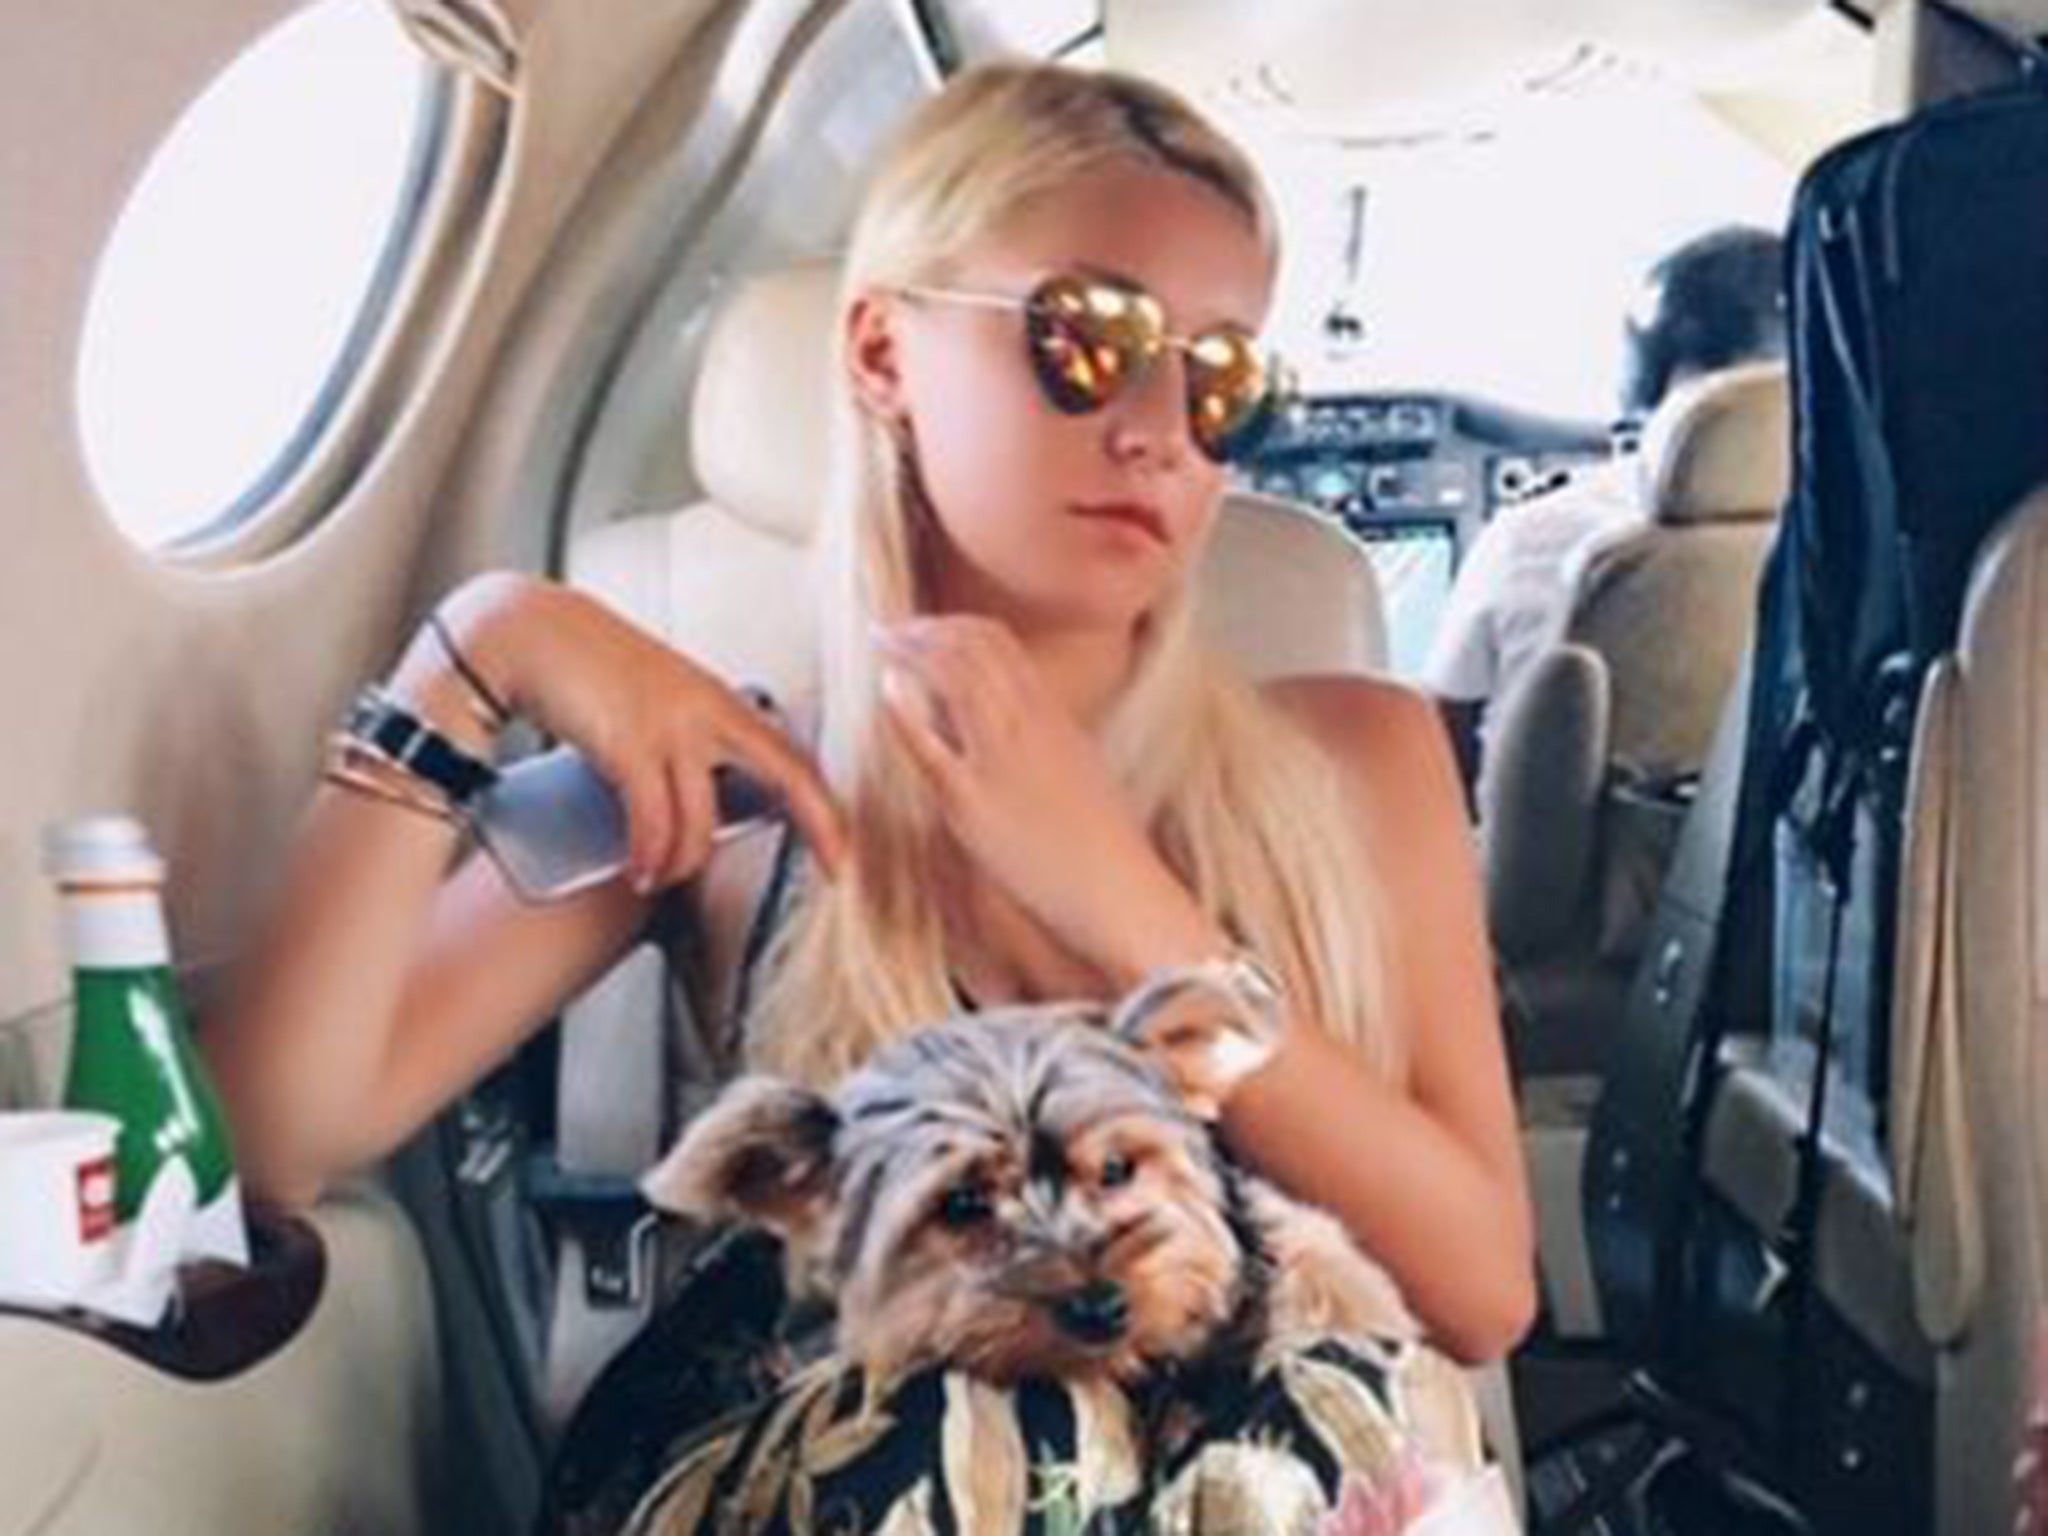 The 'Rich Kids of London' are spending the summer on yachts and jet skis with celebrities